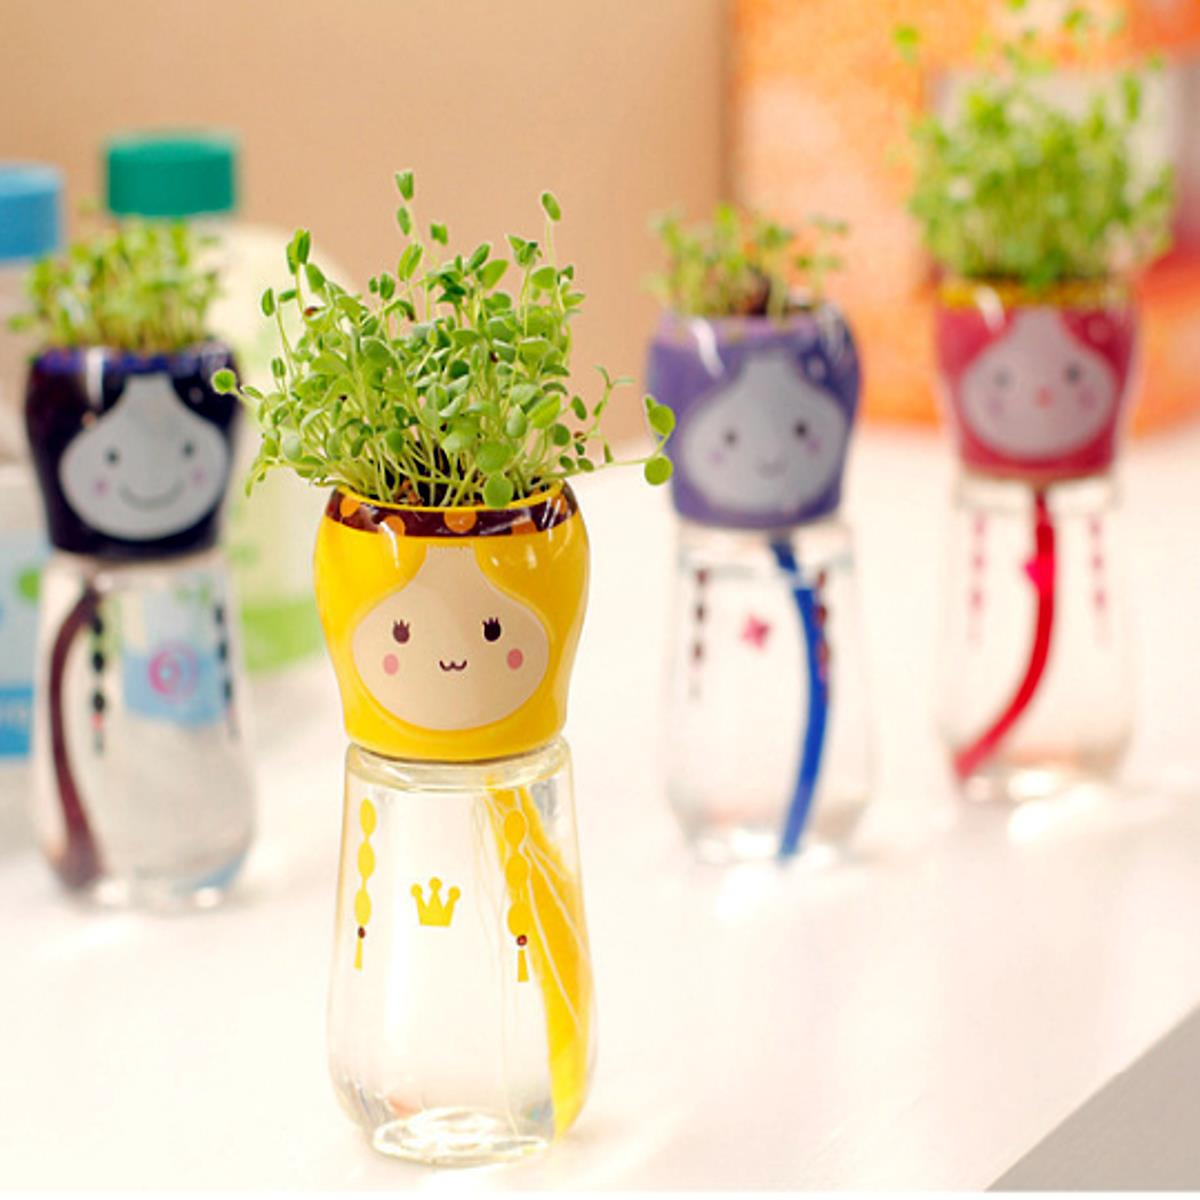 Garden Home Office Decor Cute Emoji Doll Self Straw Watering Planter Flower Pot